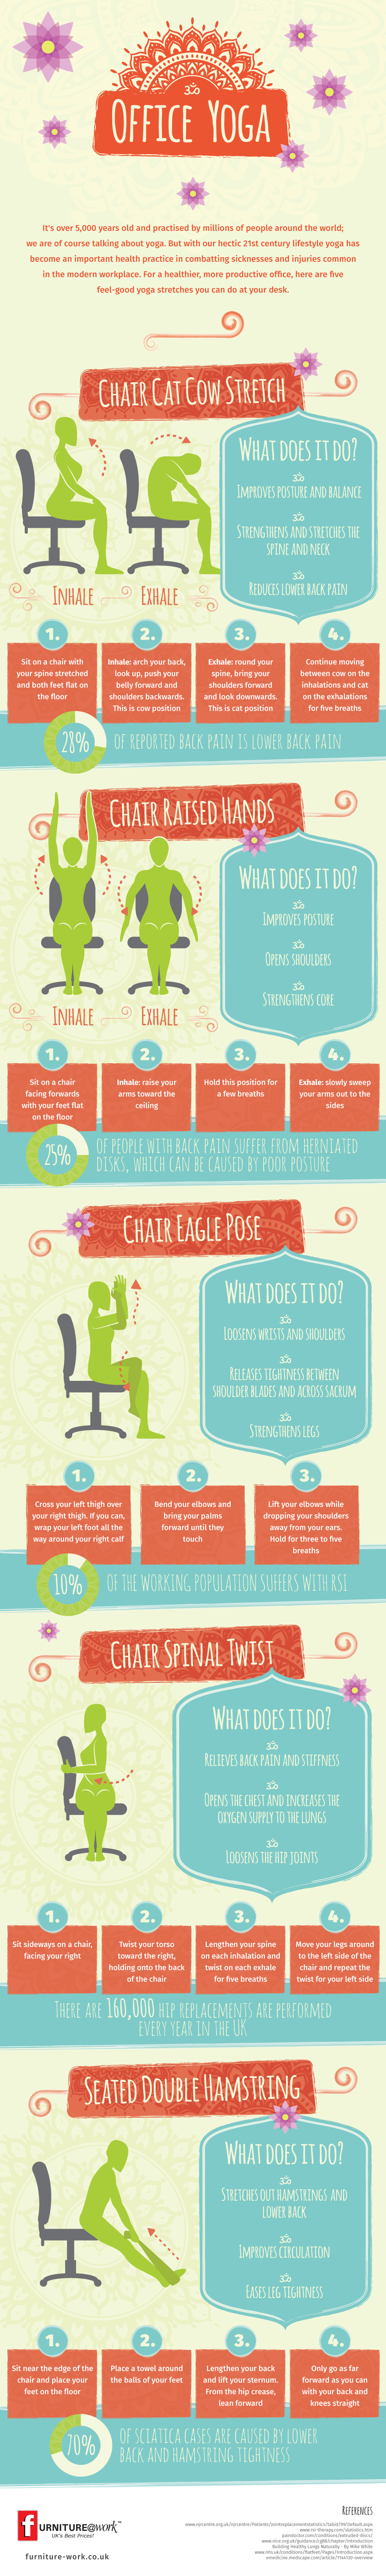 Furniture_at_work_office_yoga_infographic #officeyoga